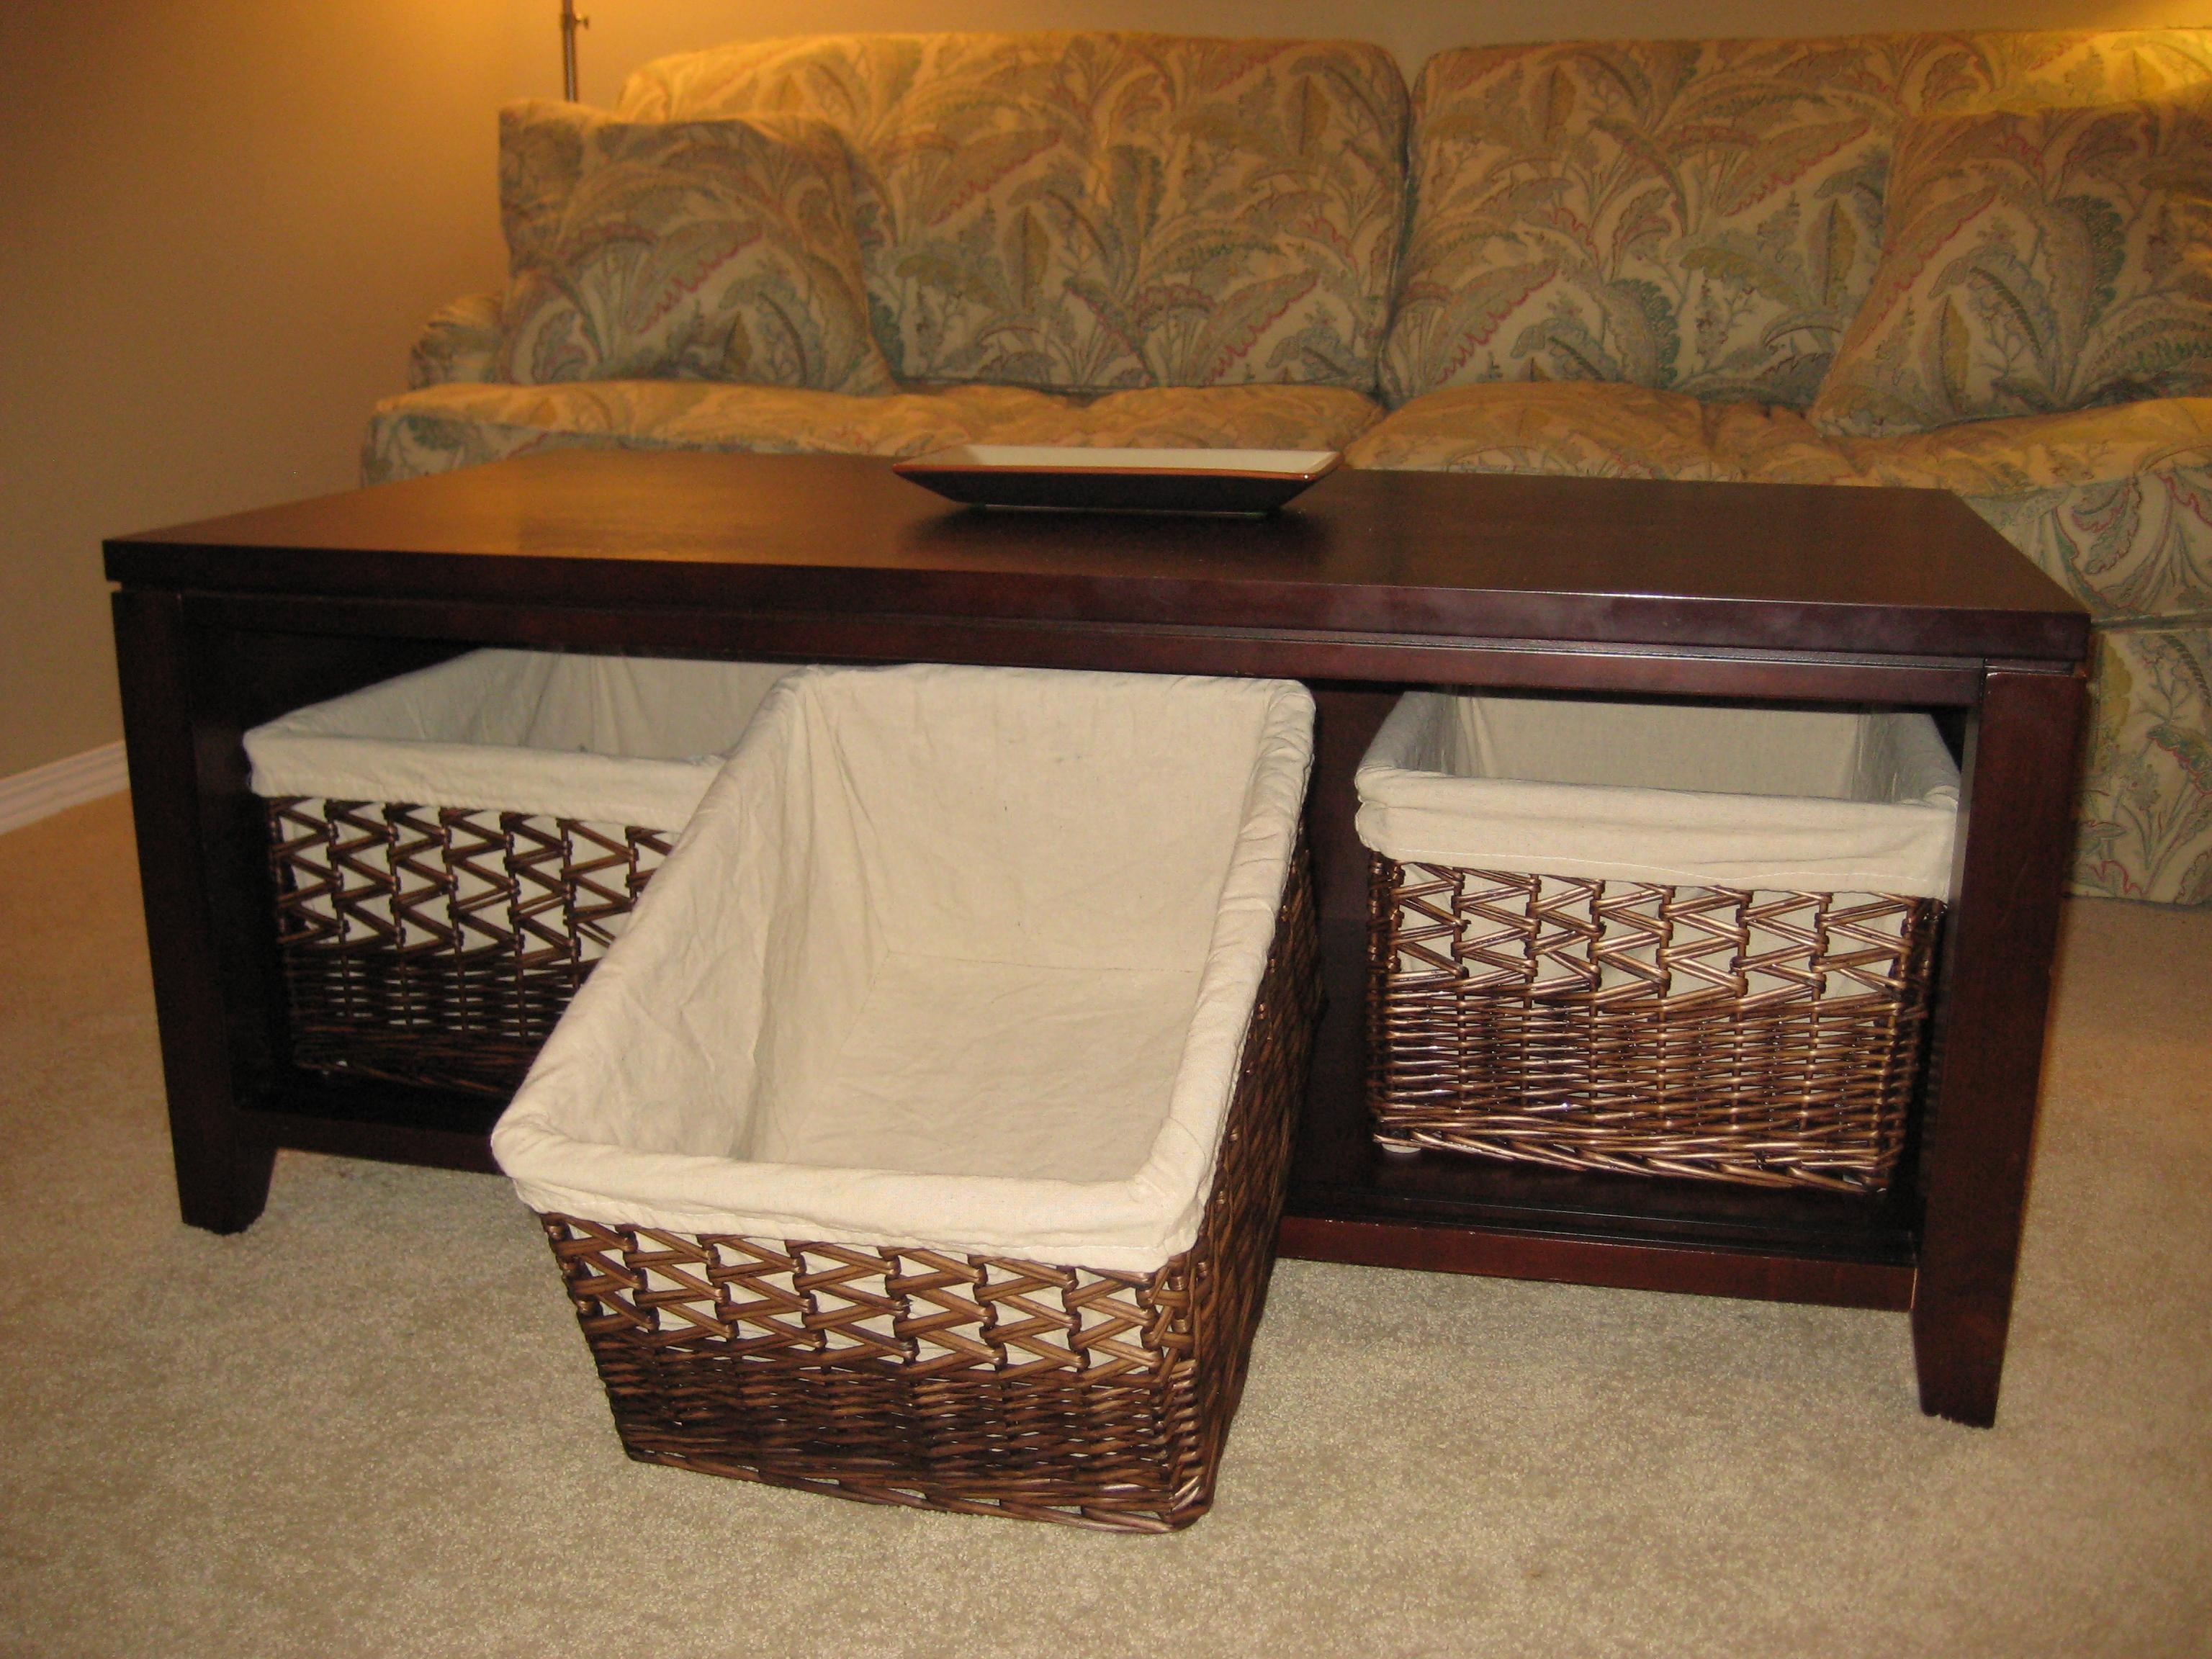 Coffee Table With Baskets For Storage – Thesecretconsul With Regard To Sofa Side Tables With Storages (Image 10 of 25)